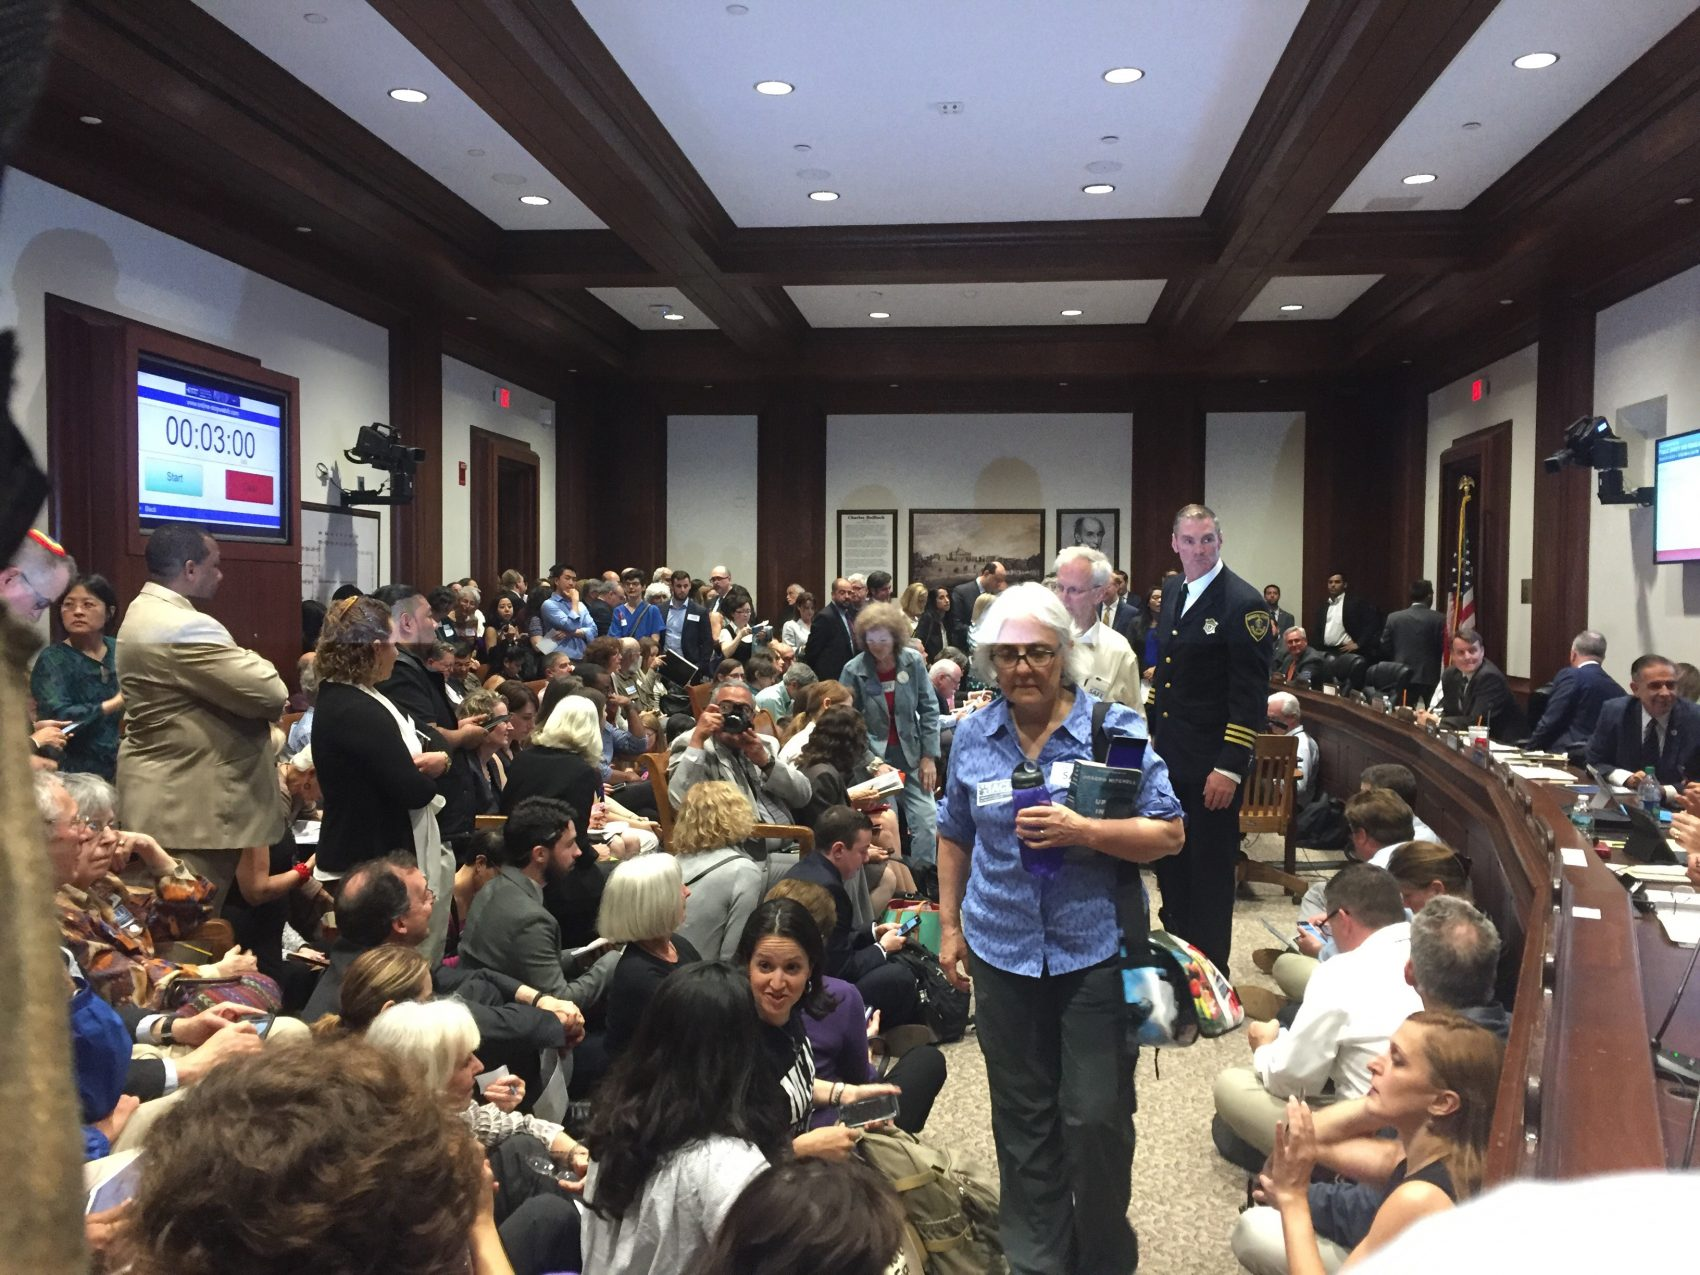 Bills that would limit the state's role in federal law enforcement drew a large crowd to the State House for an uncommon Friday hearing. (Colin A. Young/State House News Service)